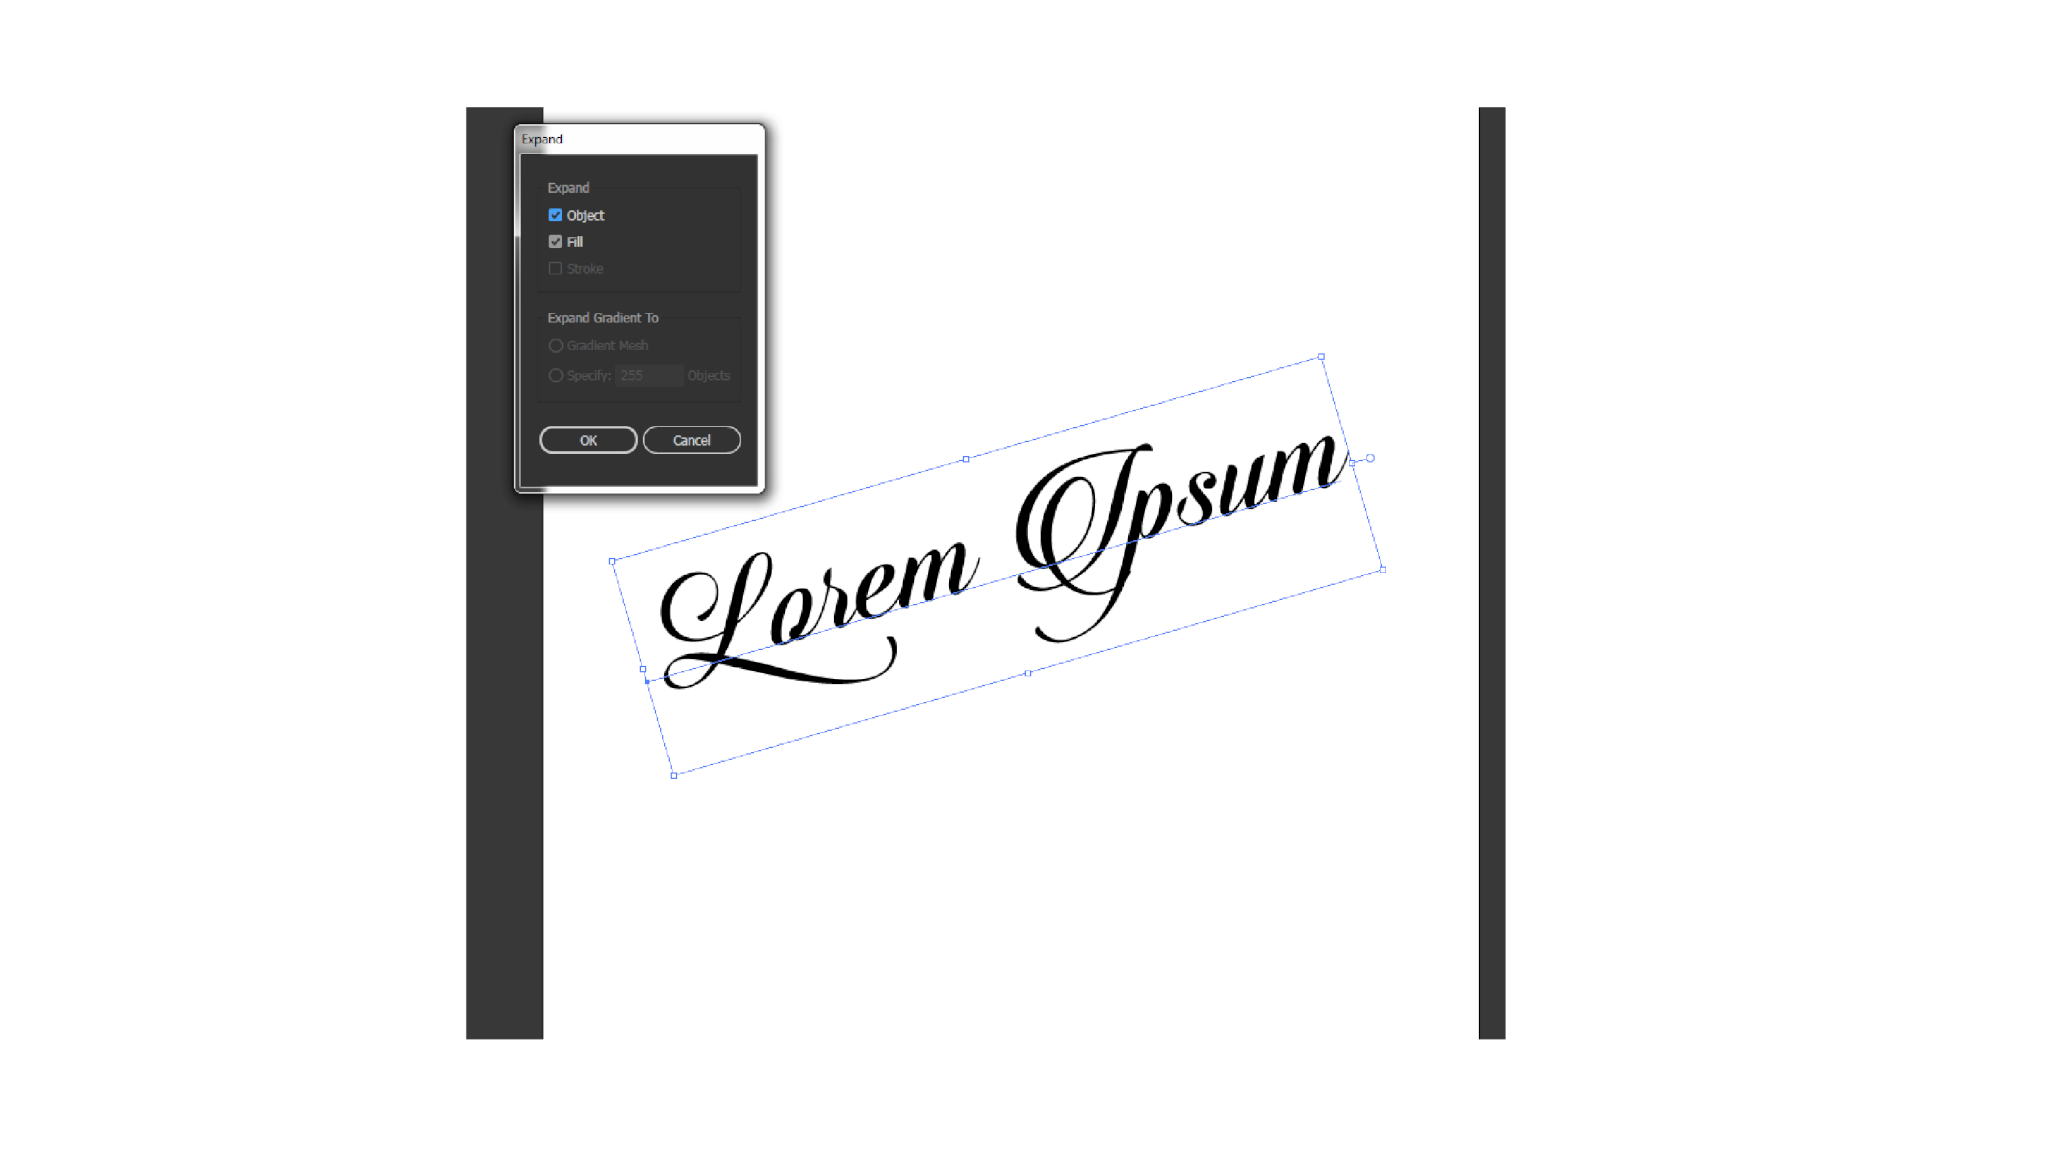 Converting text into object in Adobe Illustrator, learn how to sell vectors on Shutterstock.